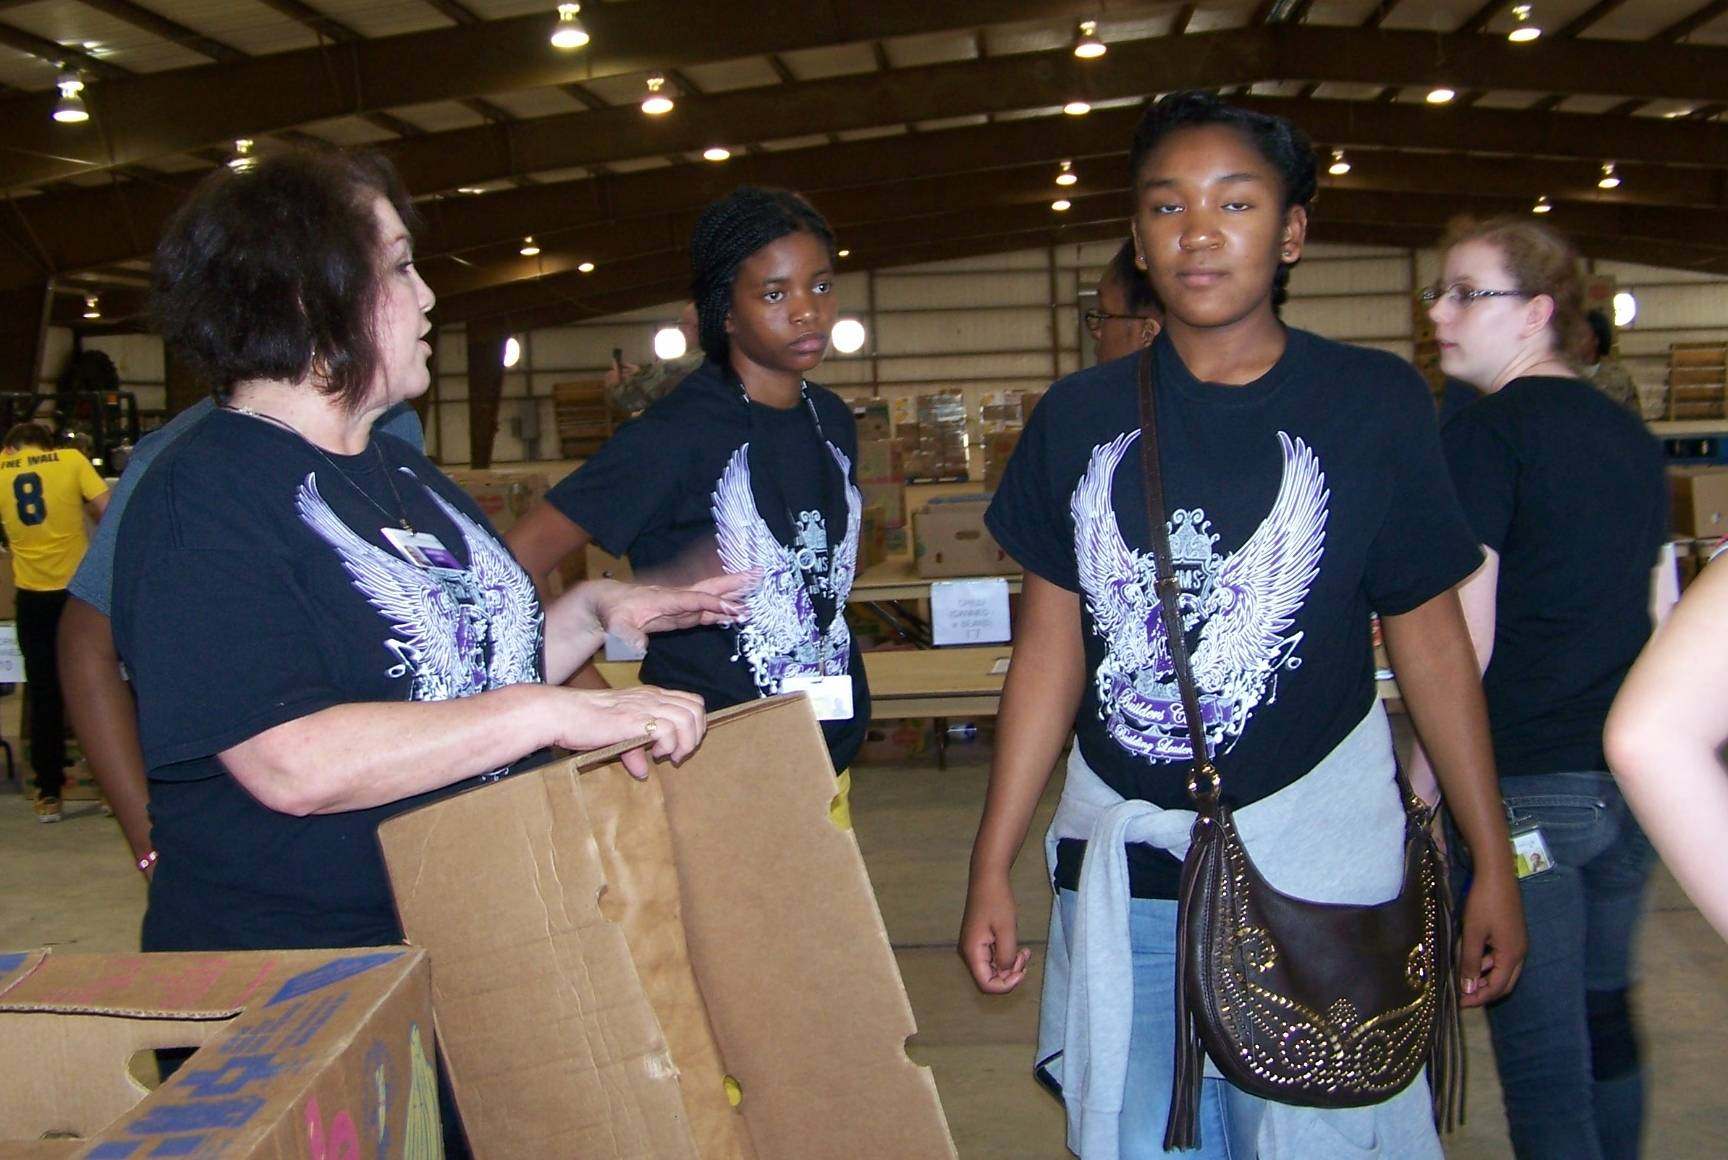 Back hard at work at the Killeen Food for Families